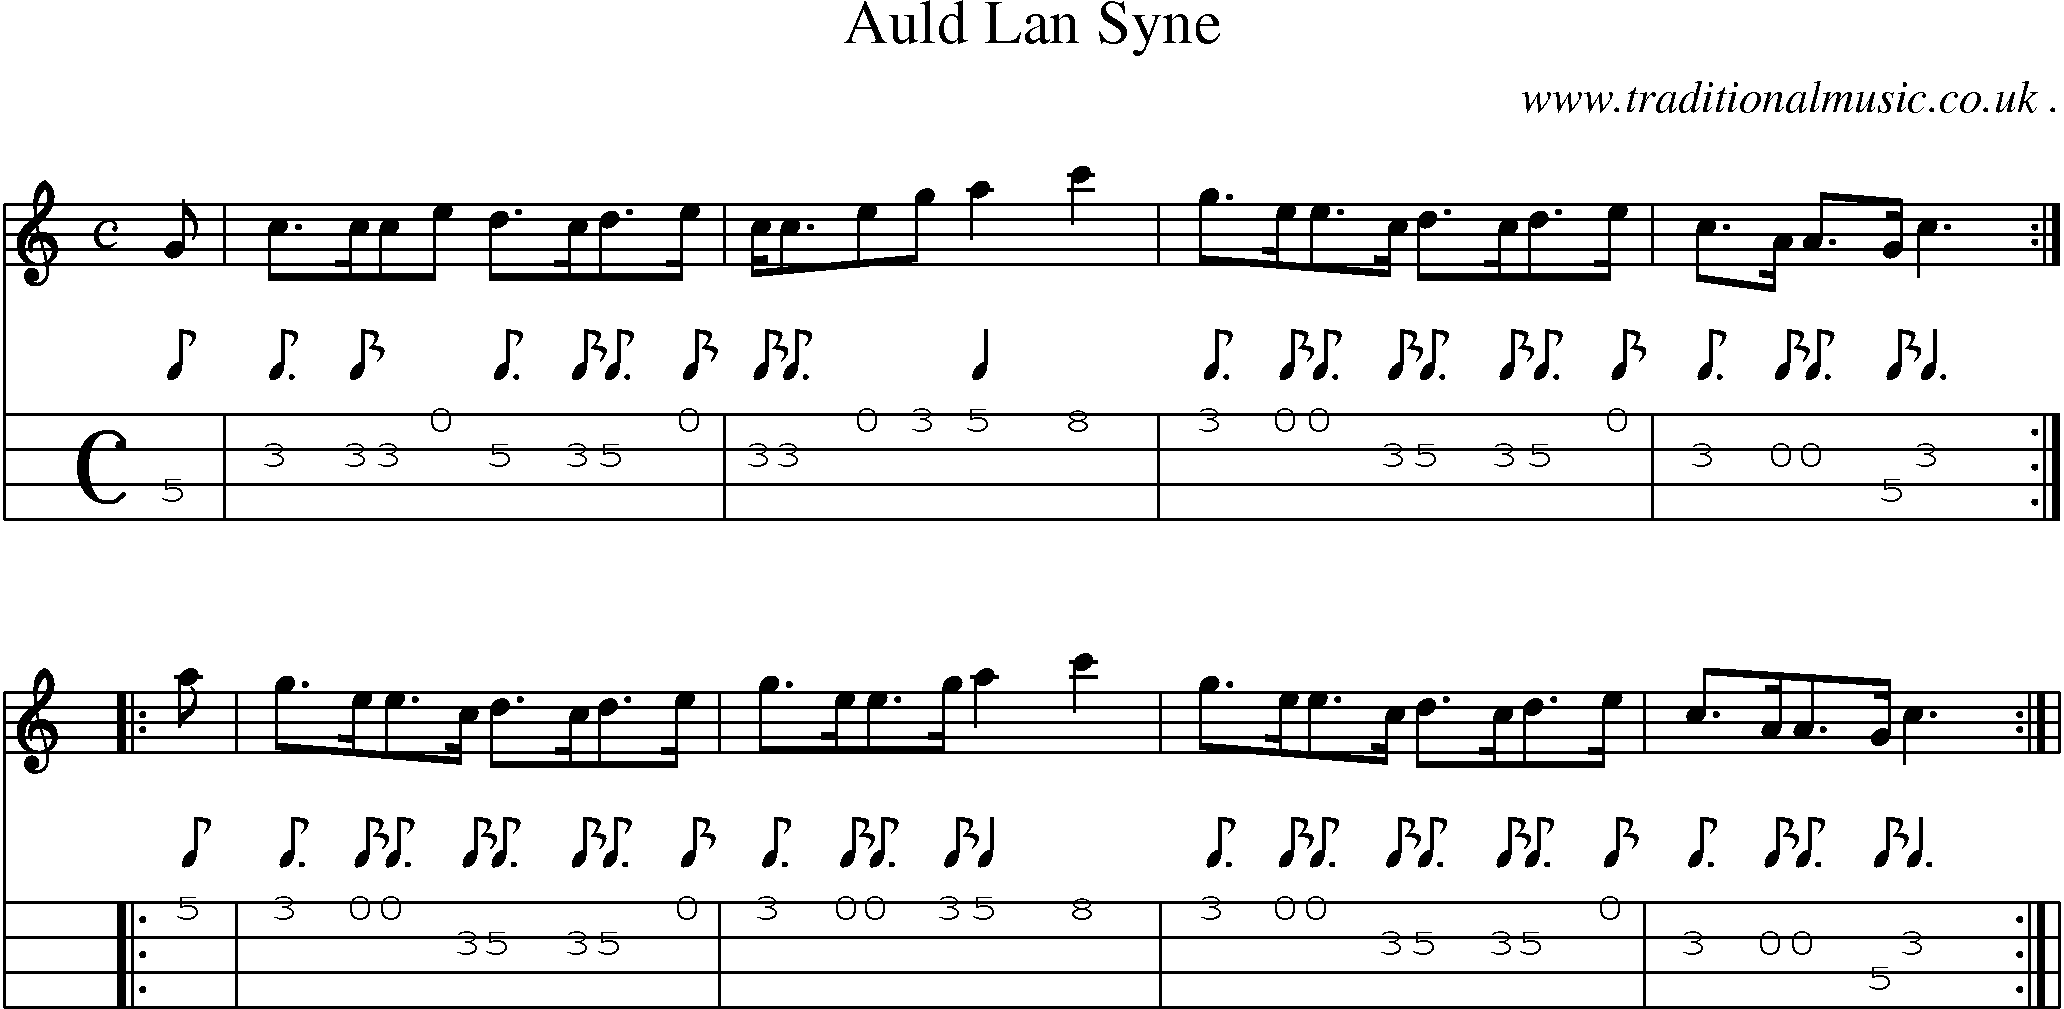 Folk and Traditional Music, Sheet-Music, Mandolin tab, midi, mp3 and PDF for: Auld Lan Syne